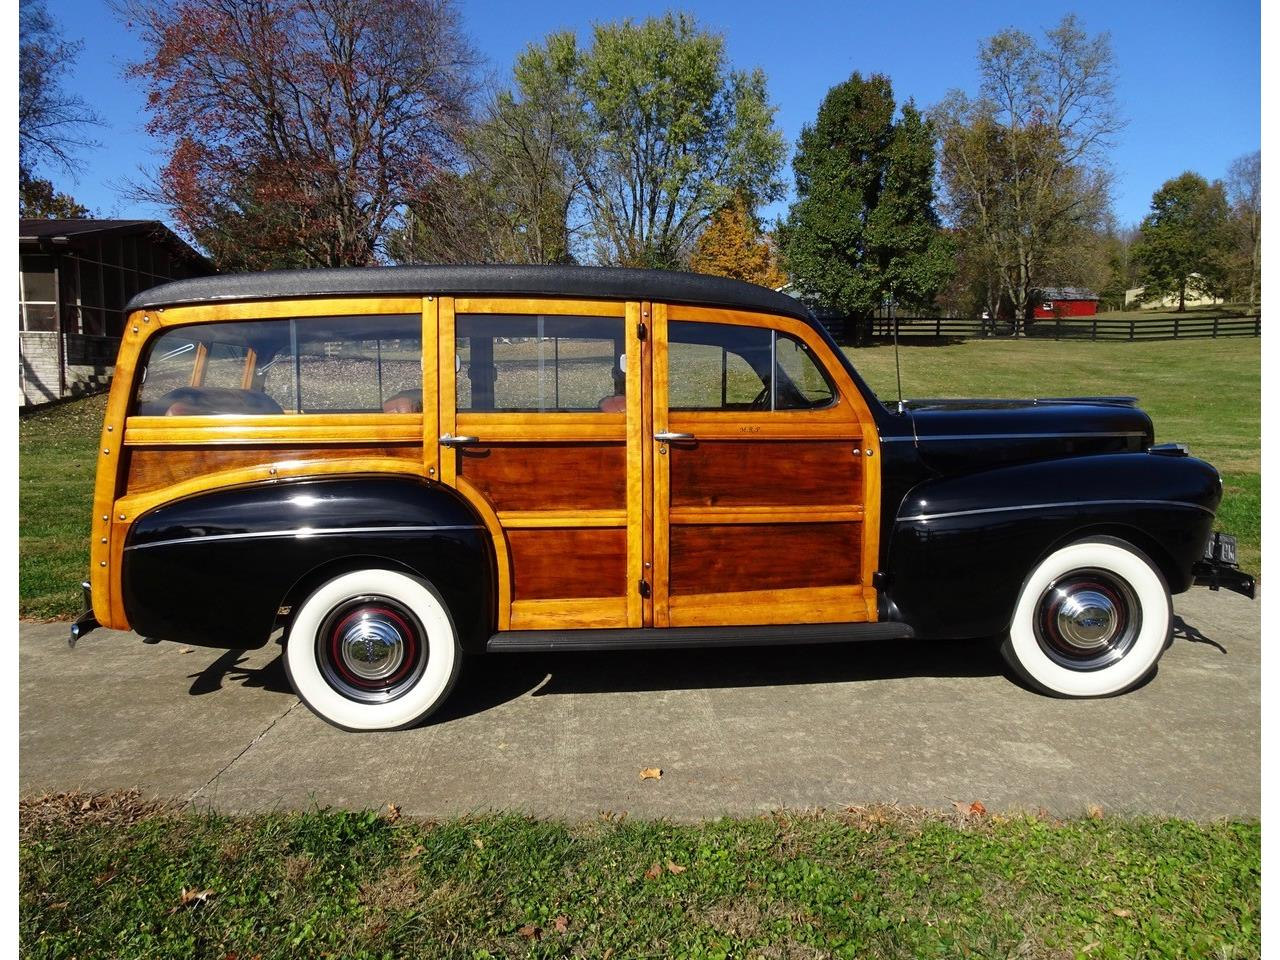 Cars For Sale In Lexington Ky: 1941 Ford Woody Wagon For Sale